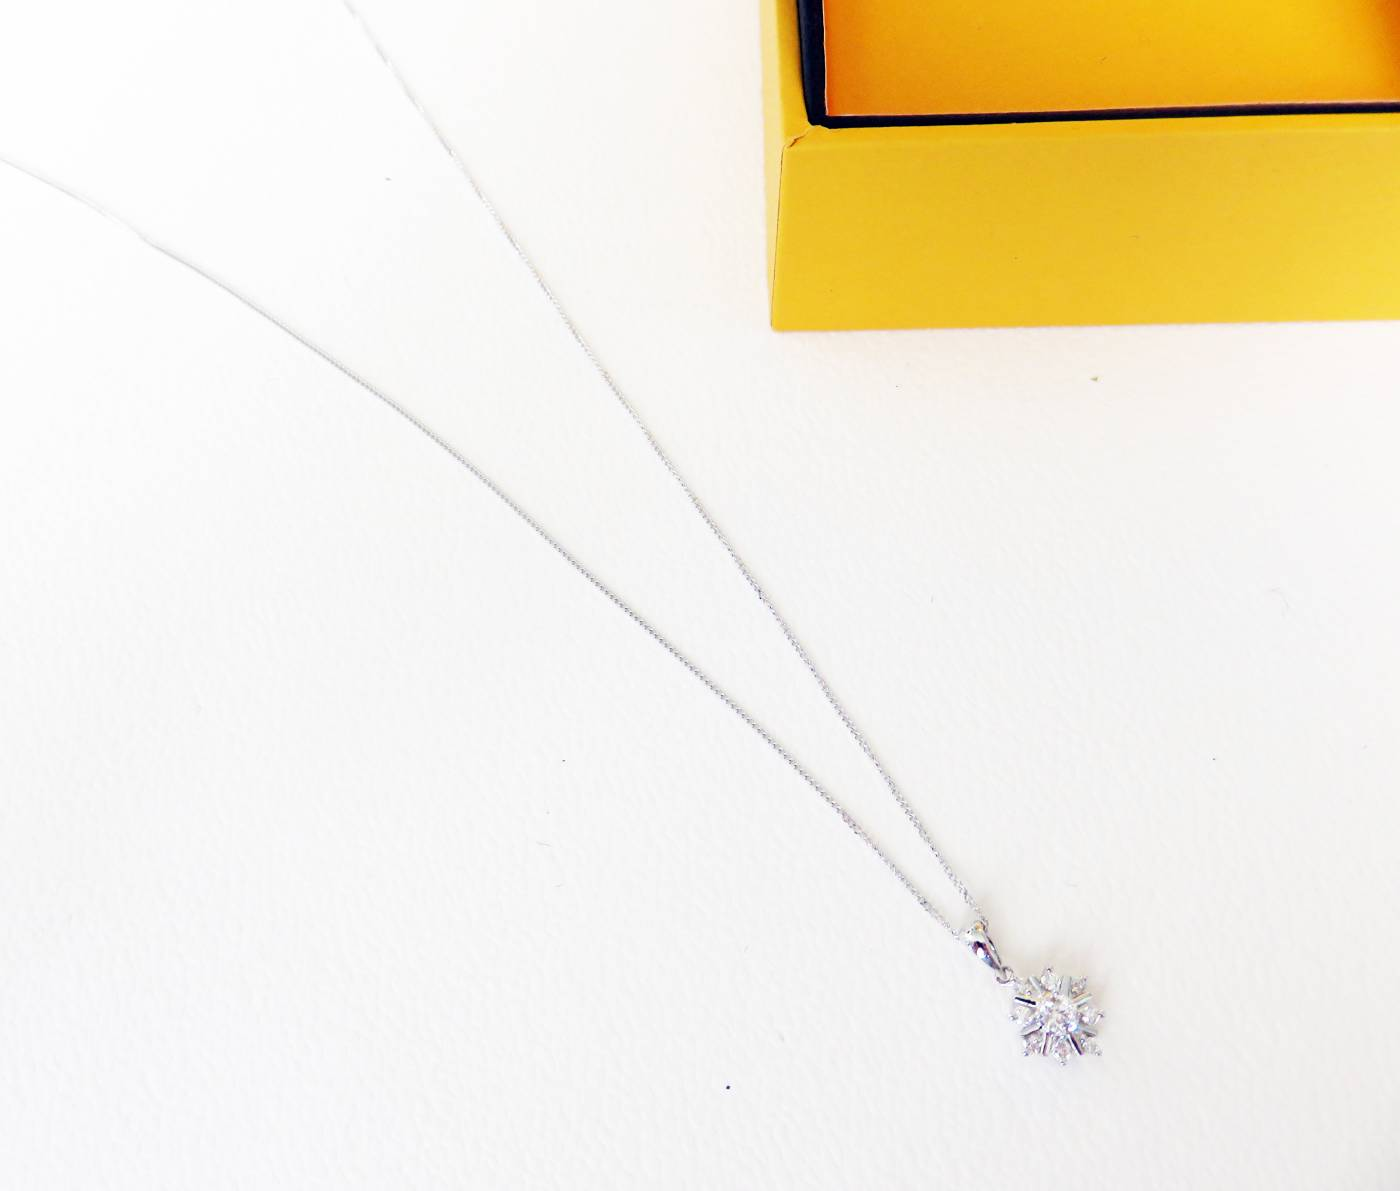 goldsmiths diamond necklace